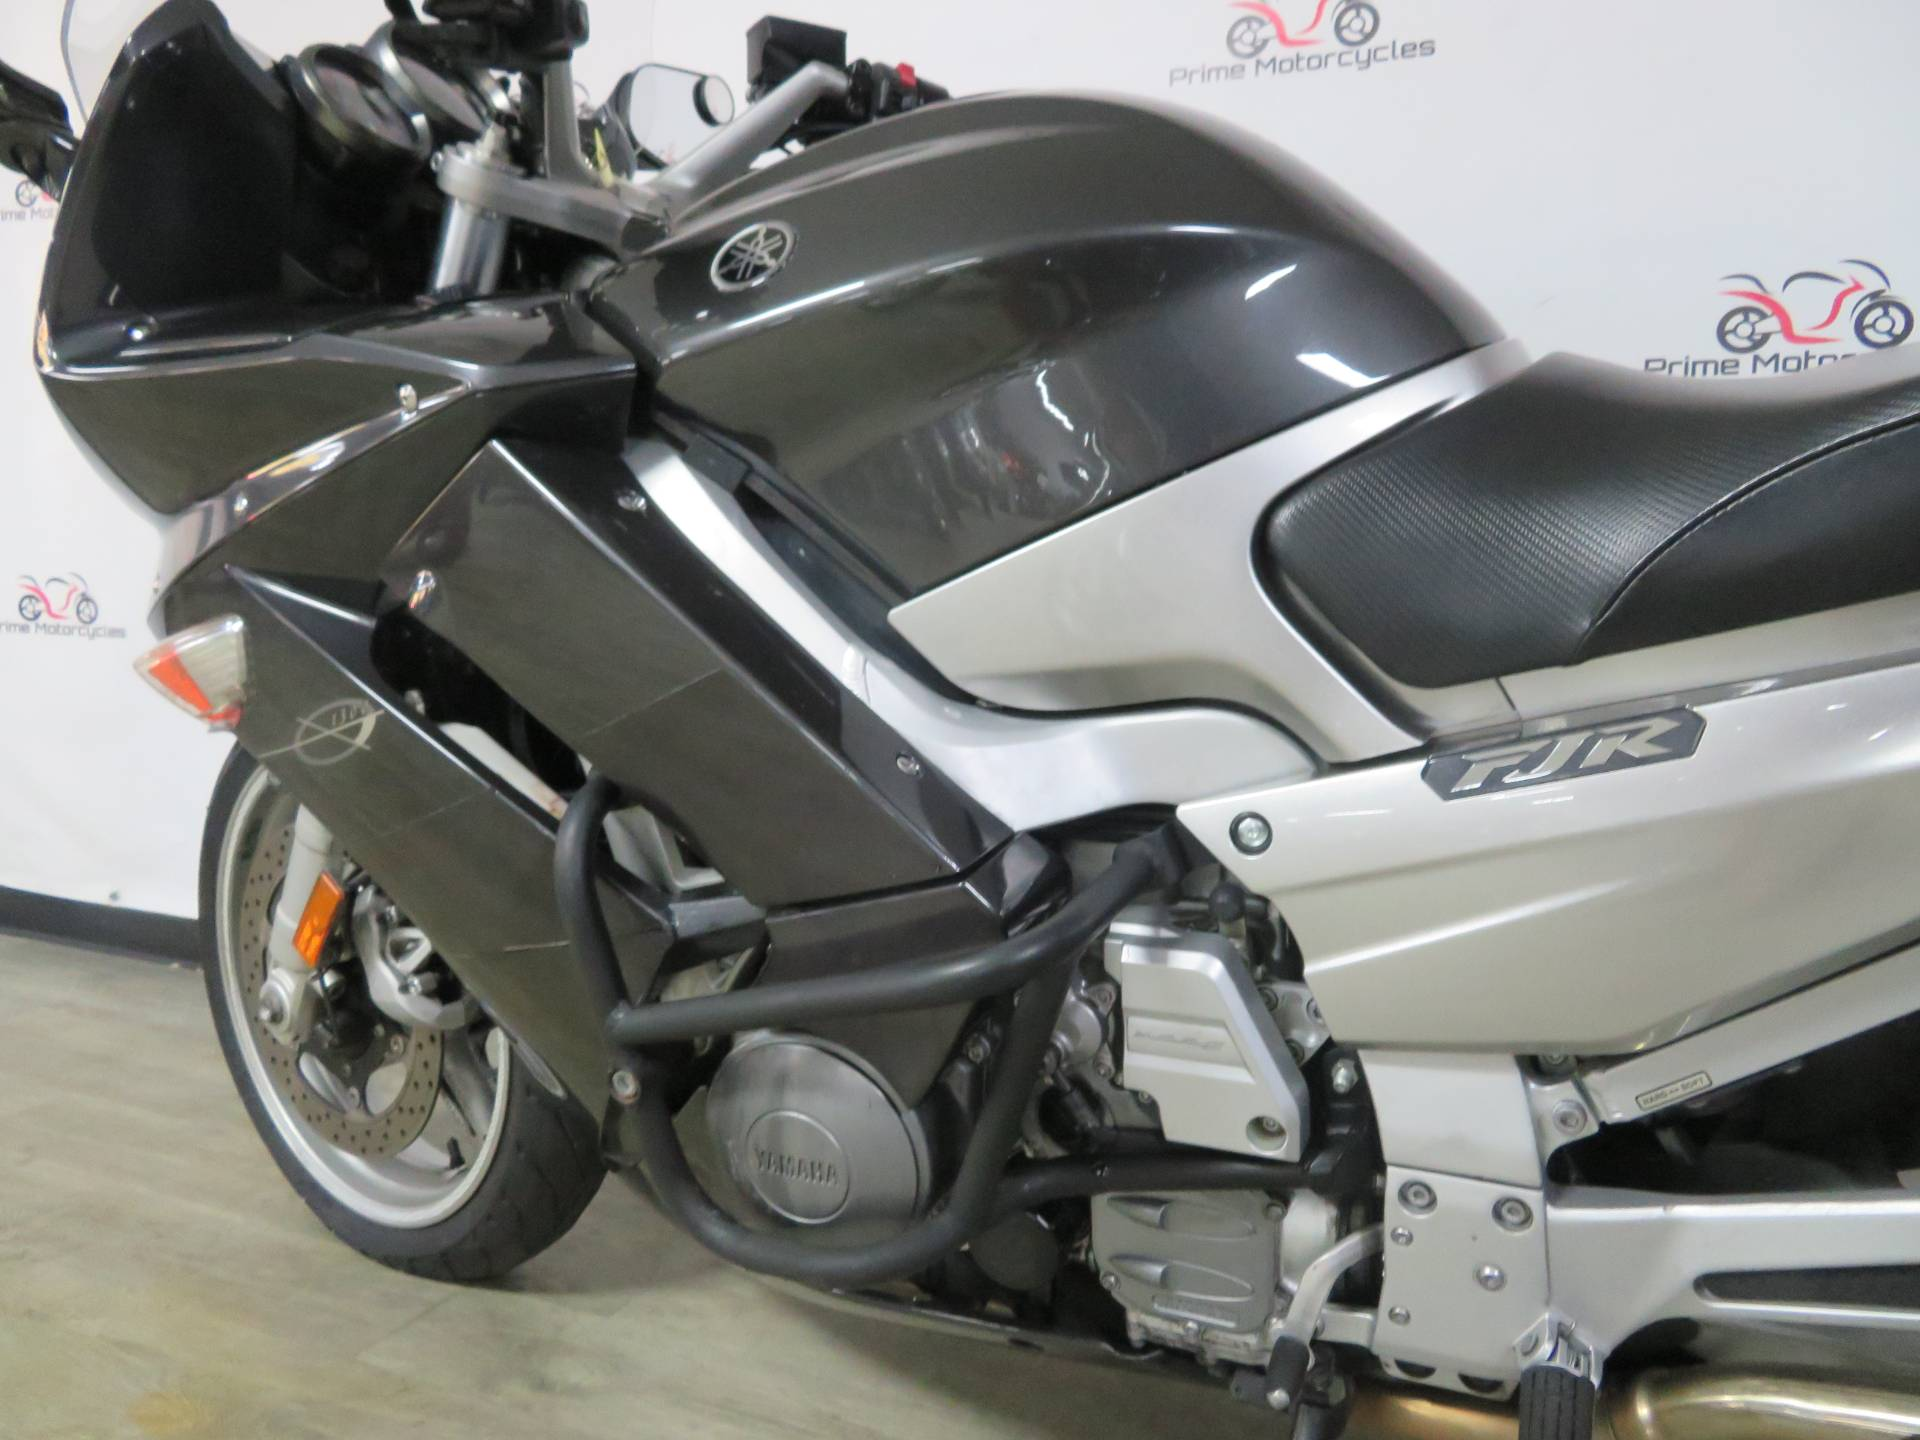 2008 Yamaha FJR 1300AE in Sanford, Florida - Photo 12